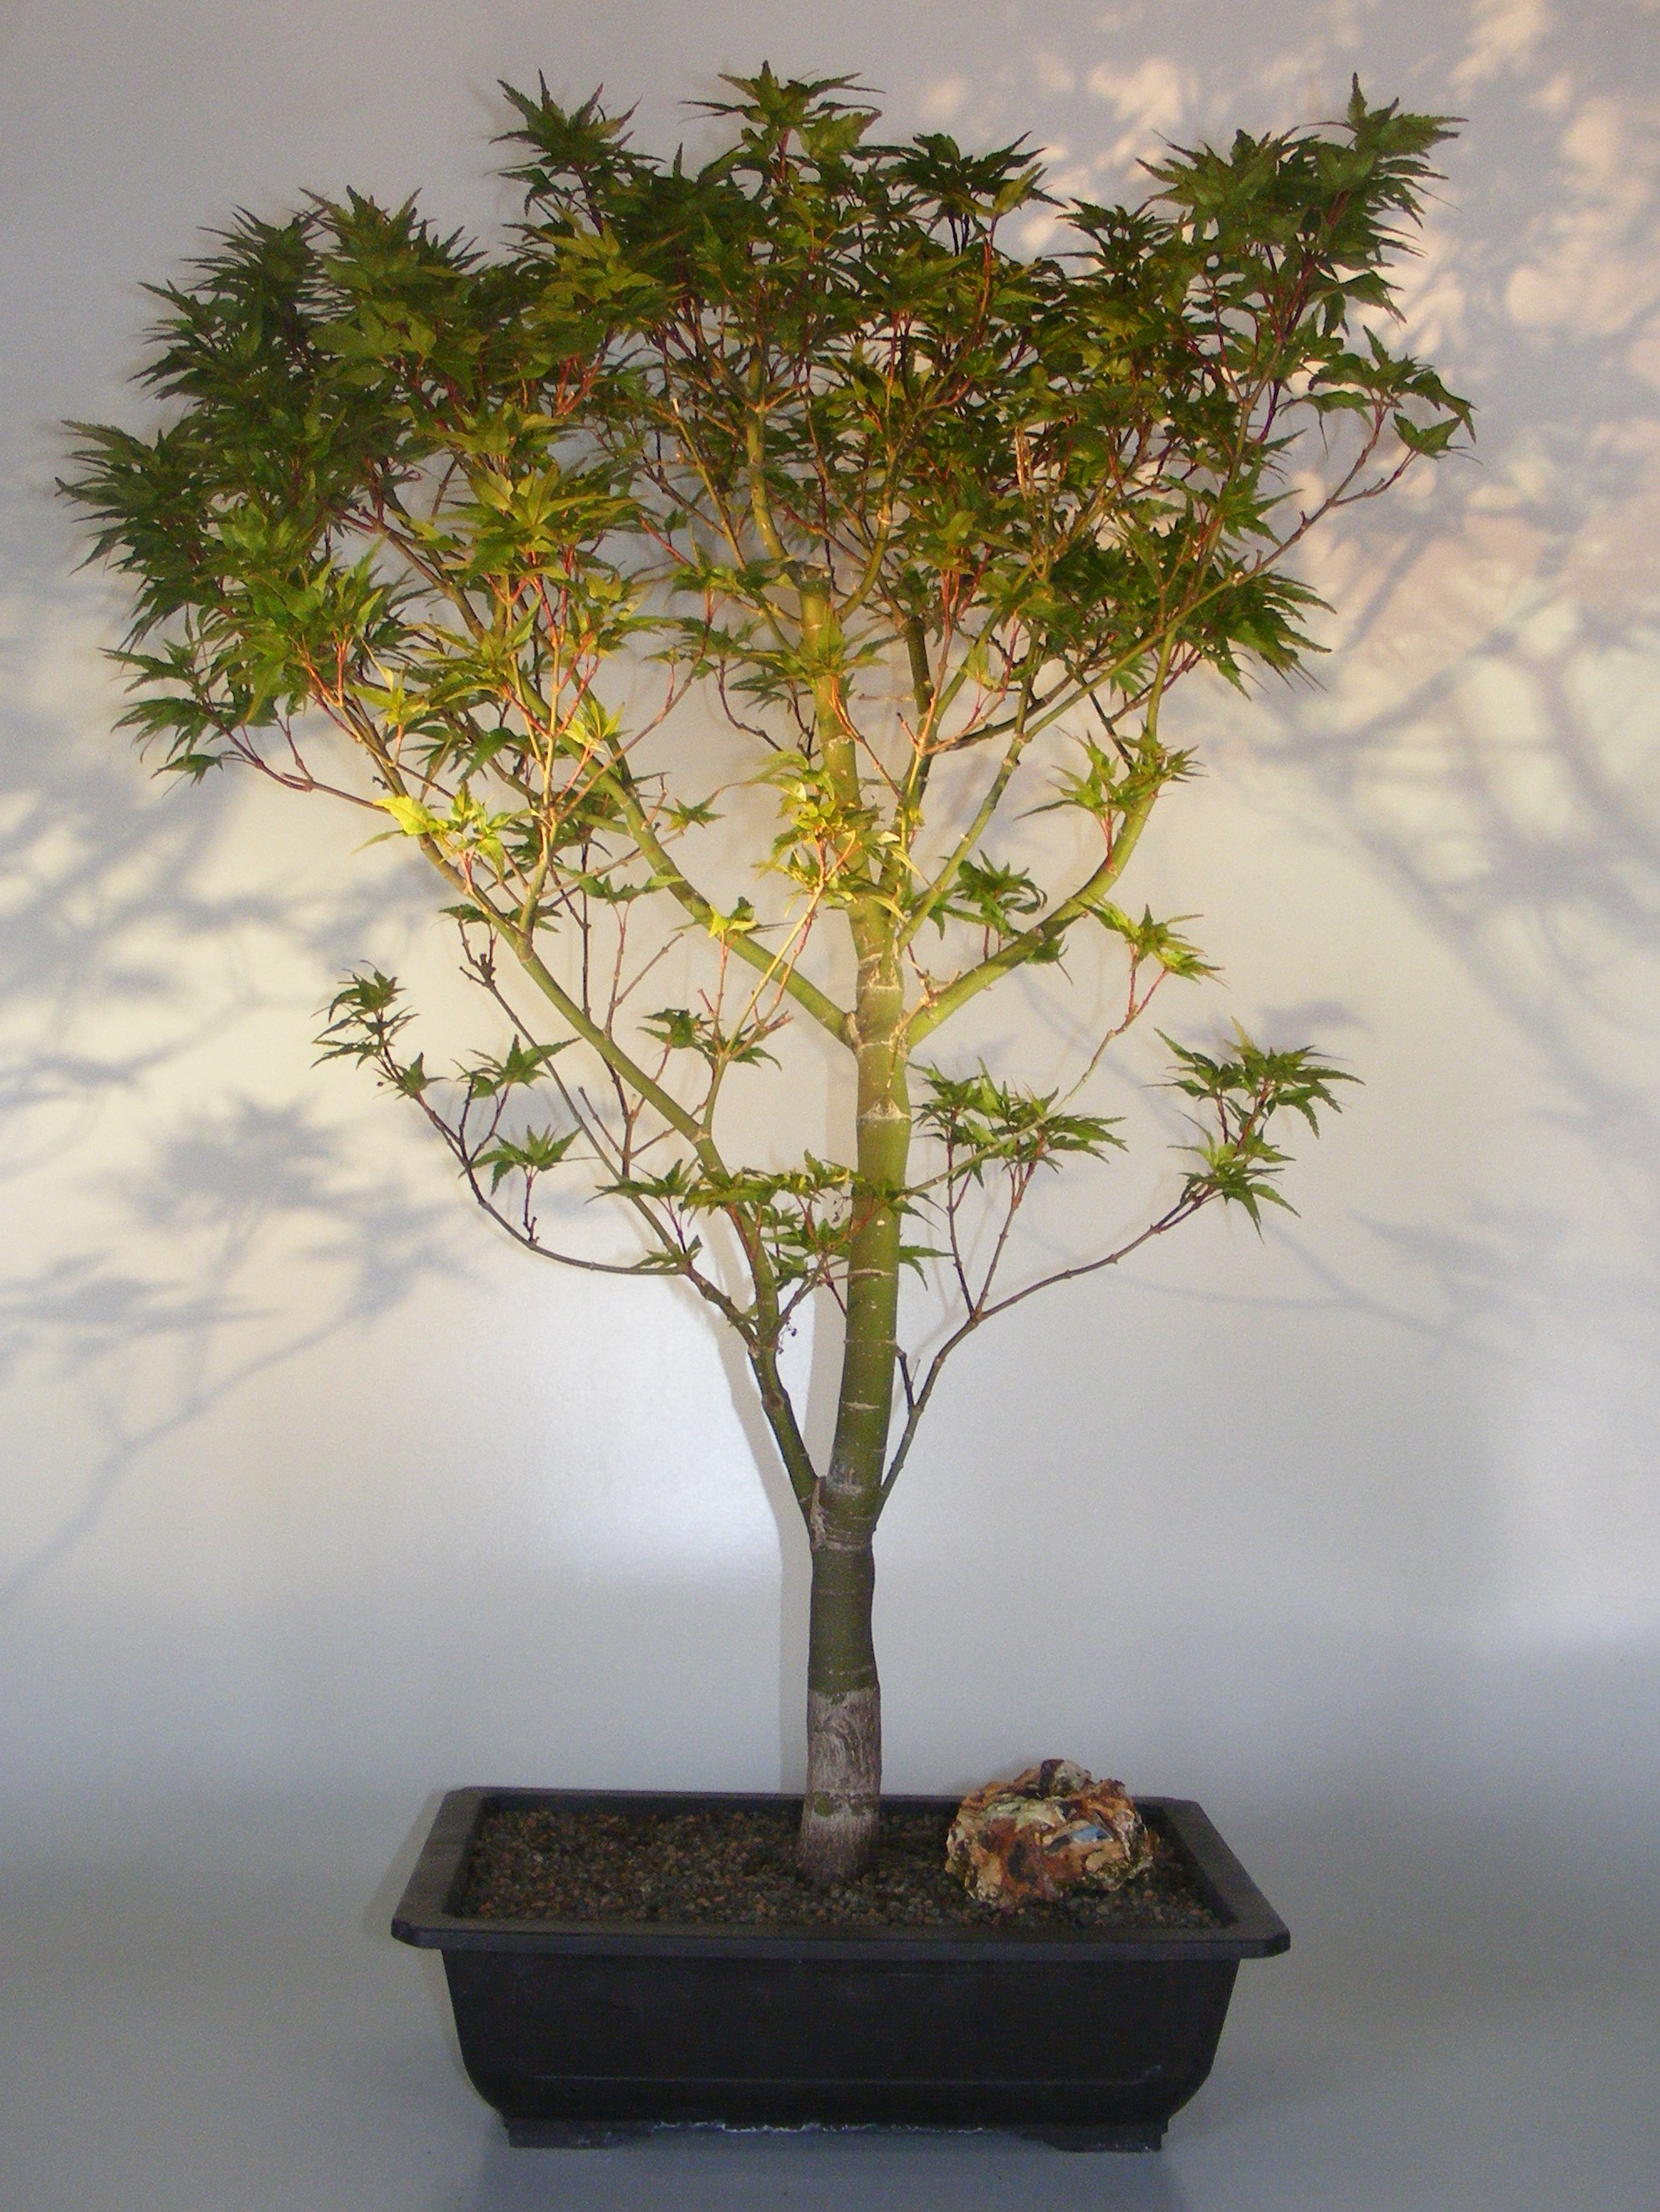 Dwarf Japanese Maple Bonsai Treeacer Palmatum Taro Yama